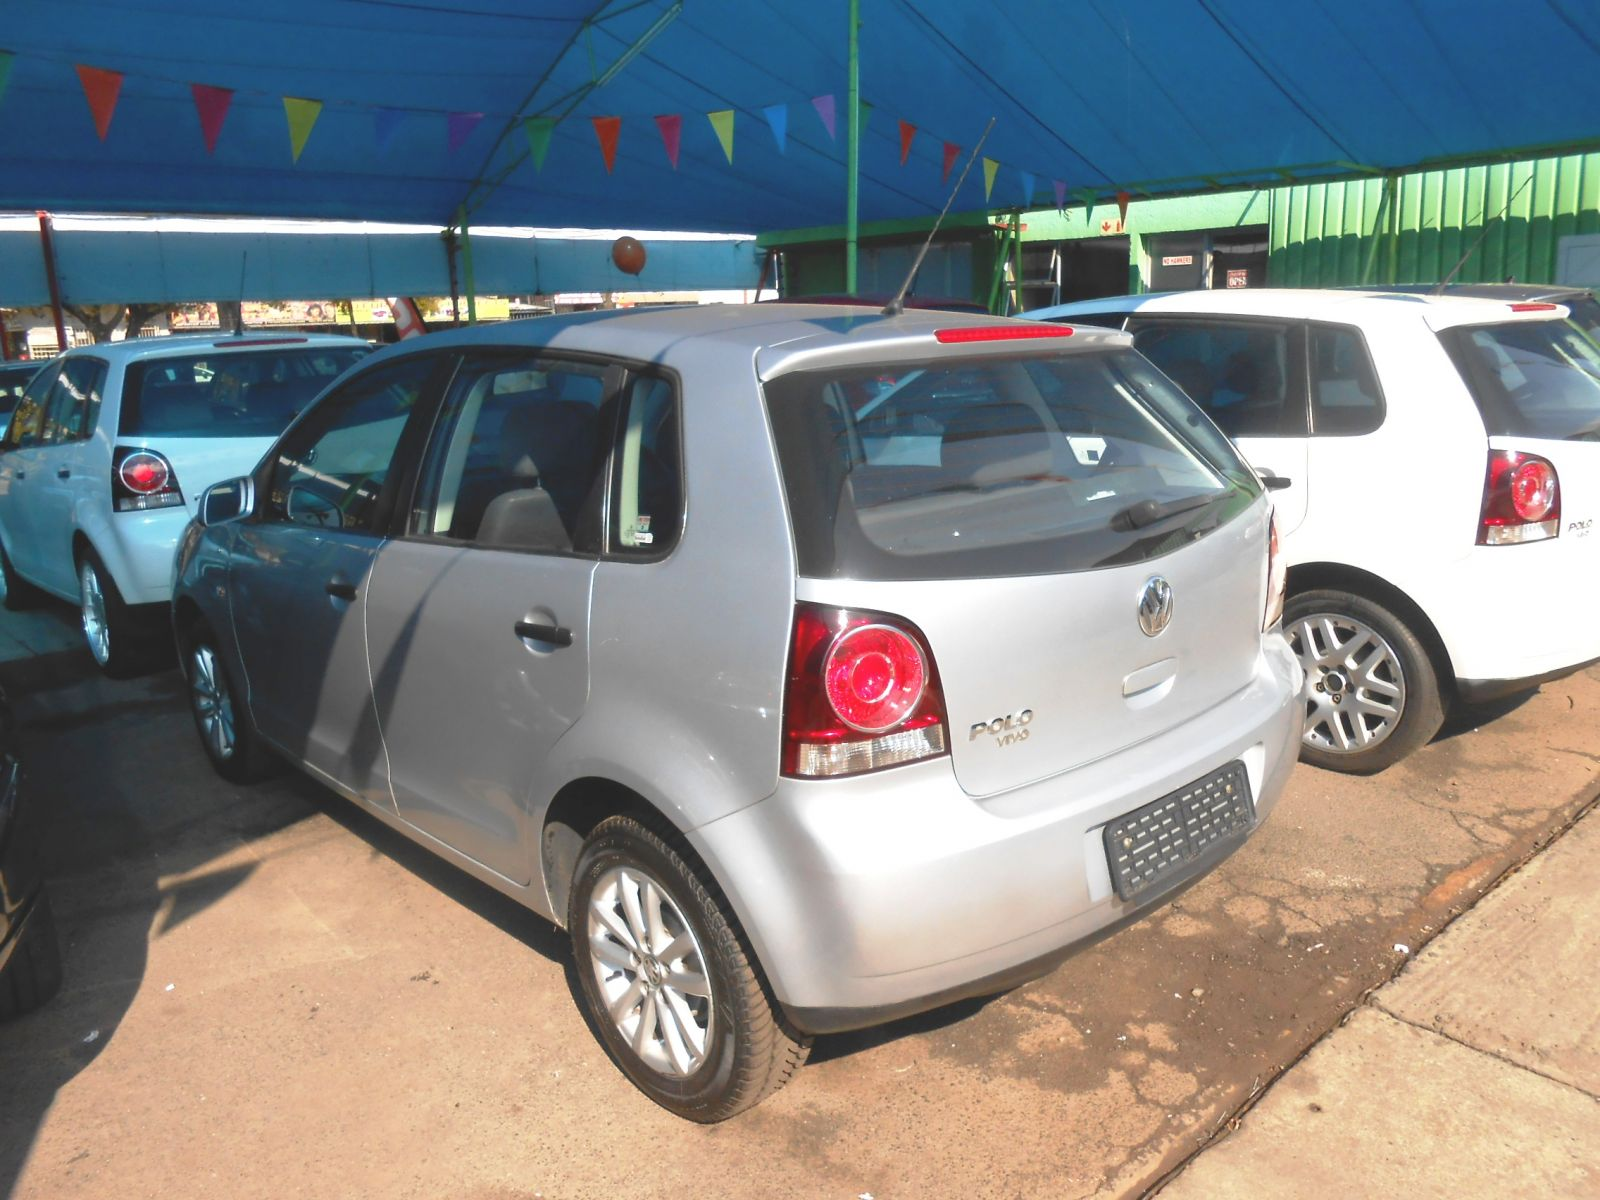 Polo For Sale Olx Gauteng | AGBU Hye Geen